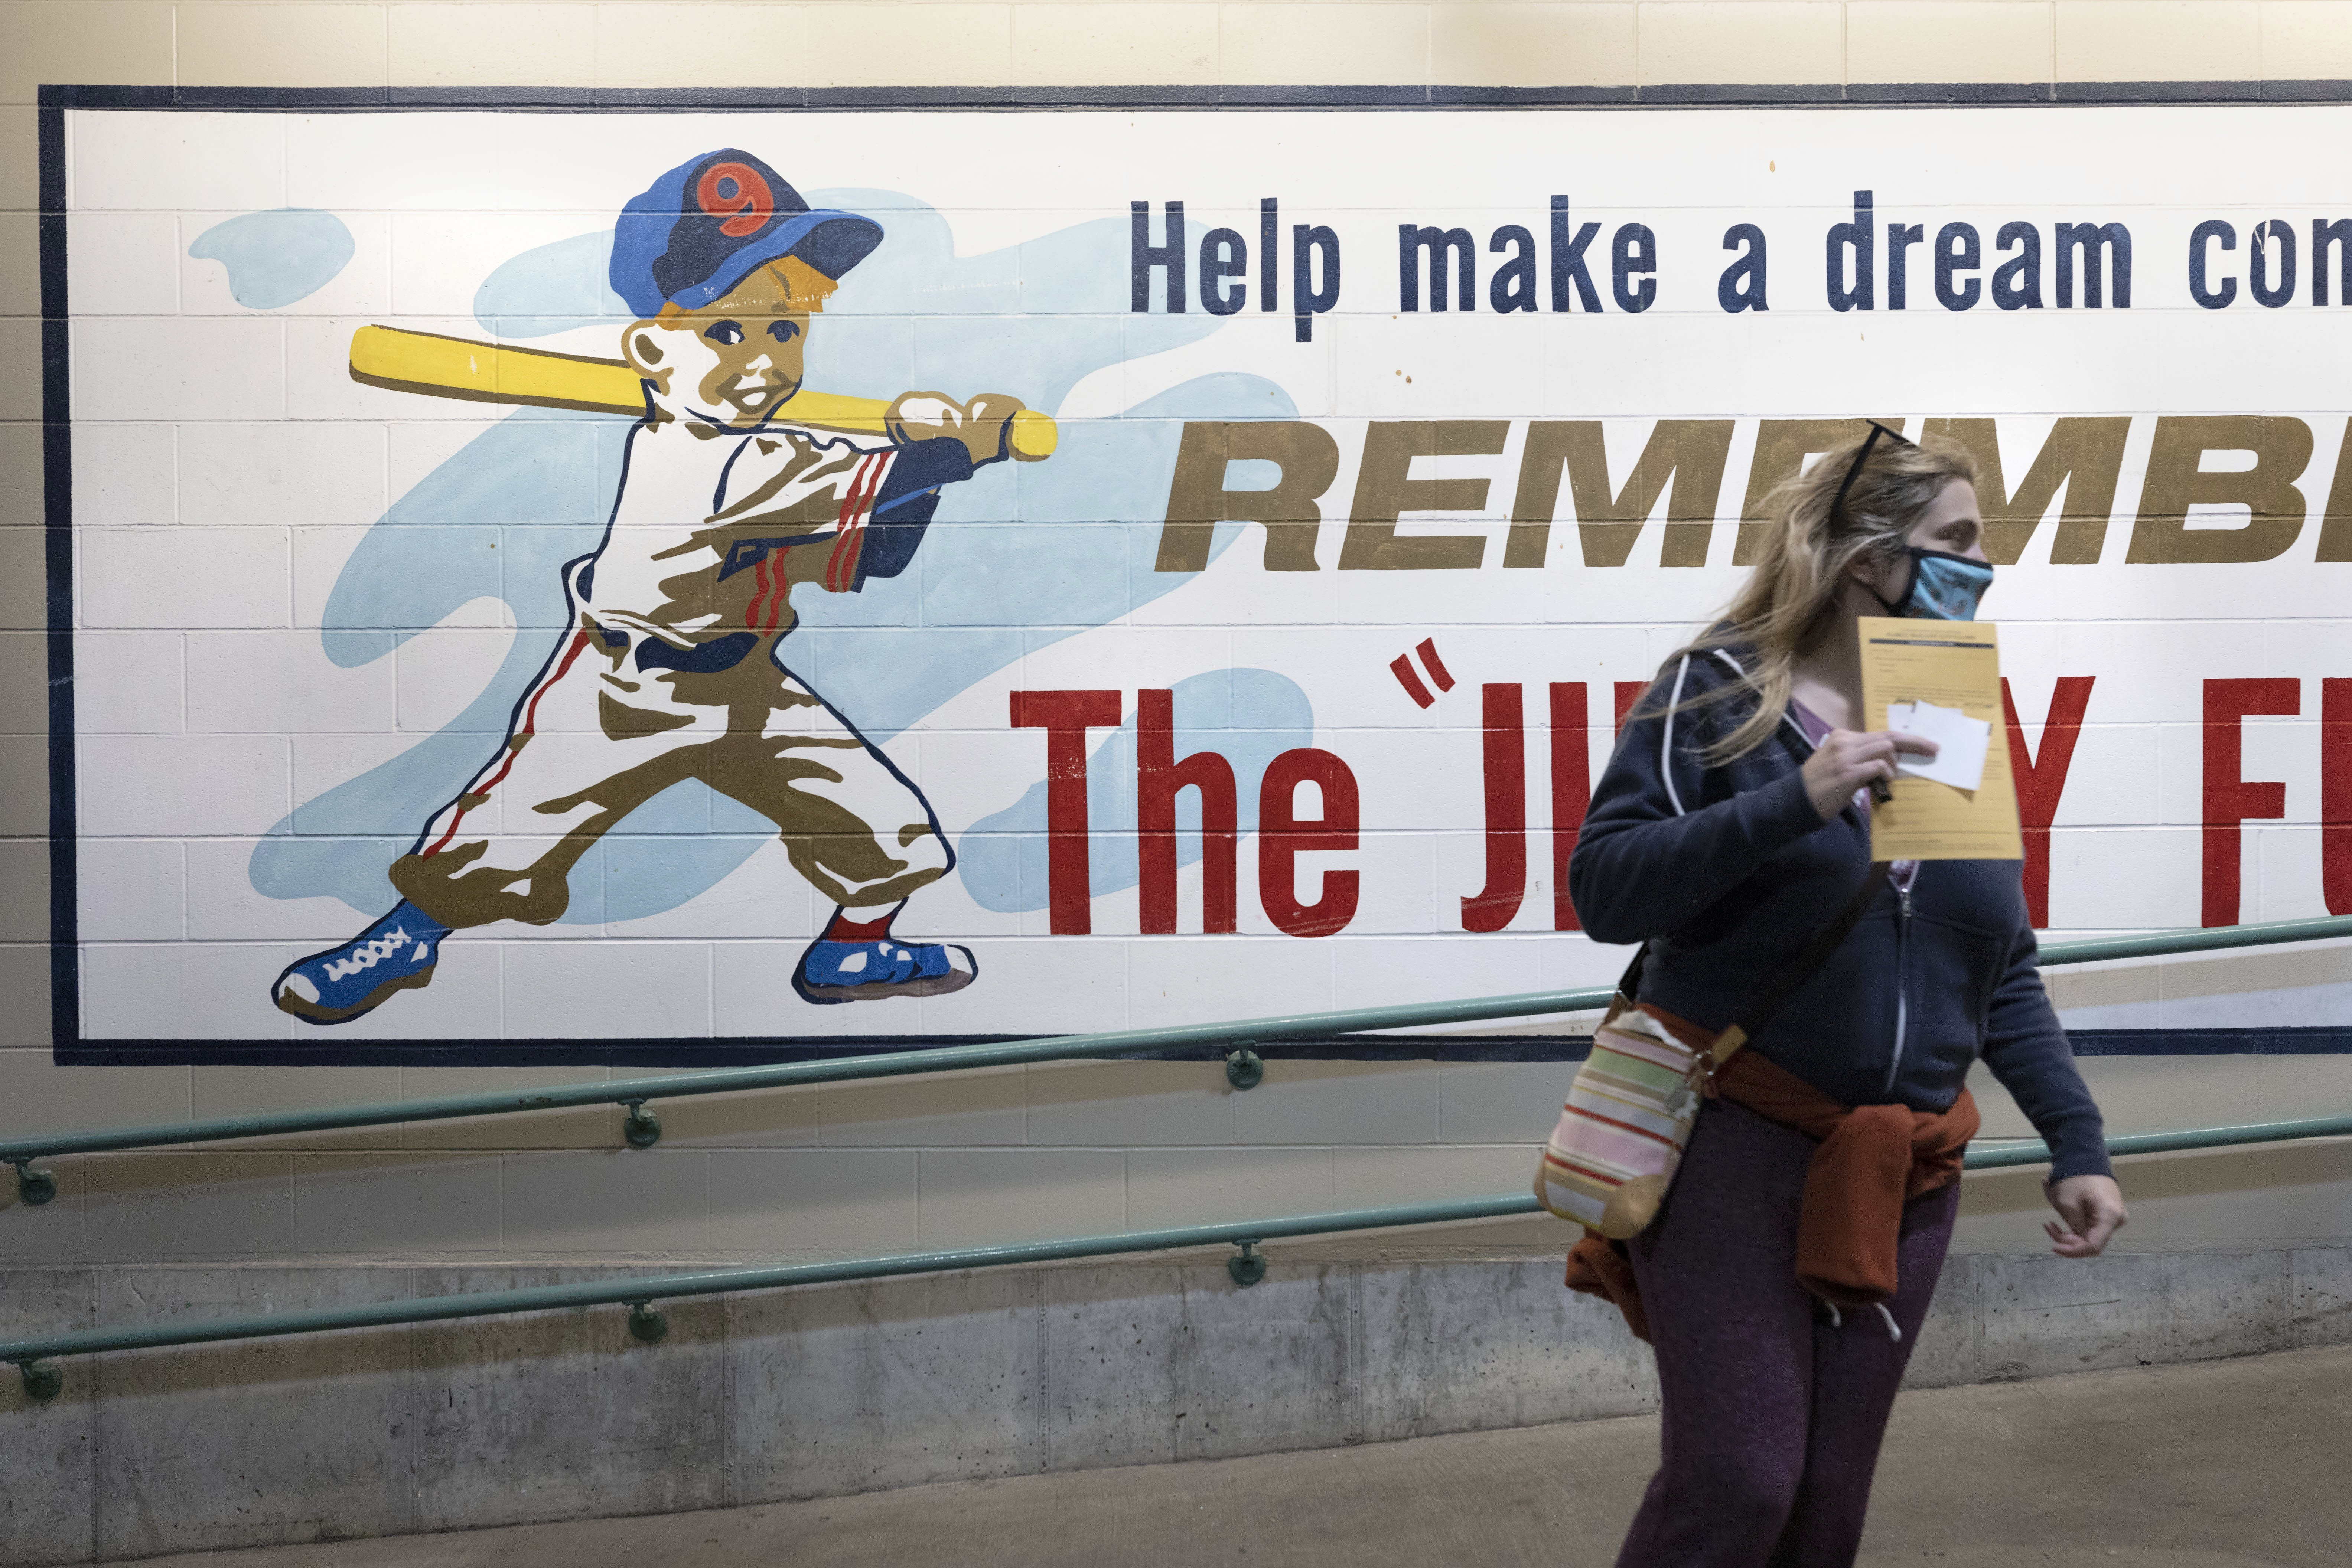 A woman holds her ballot as she heads to a voting booth in the concourse at Fenway Park, Saturday, Oct. 17, 2020, in Boston. (AP Photo/Michael Dwyer)